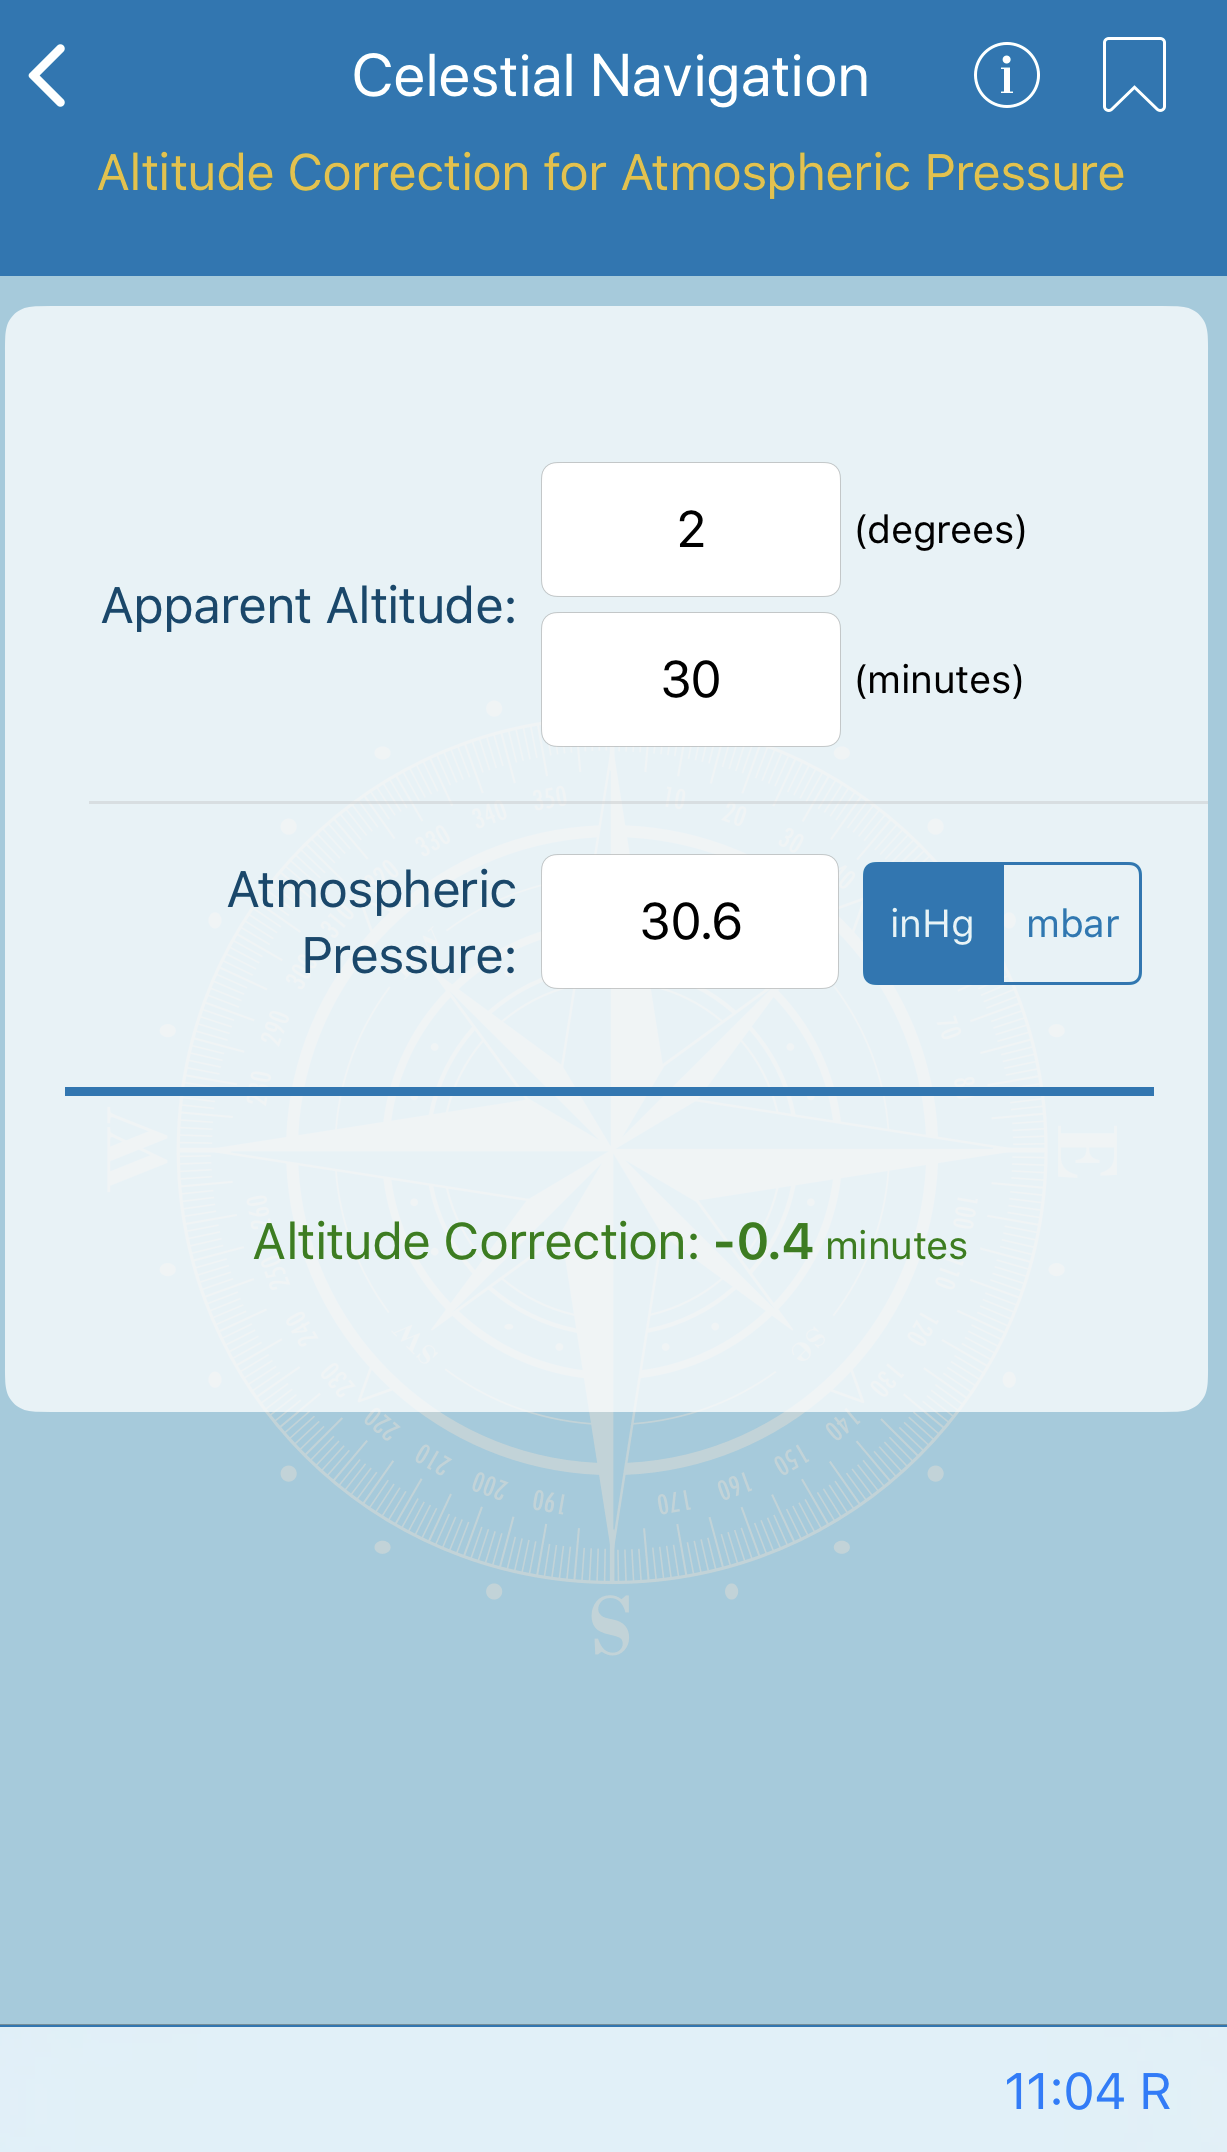 Altitude Correction for Atmospheric Pressure